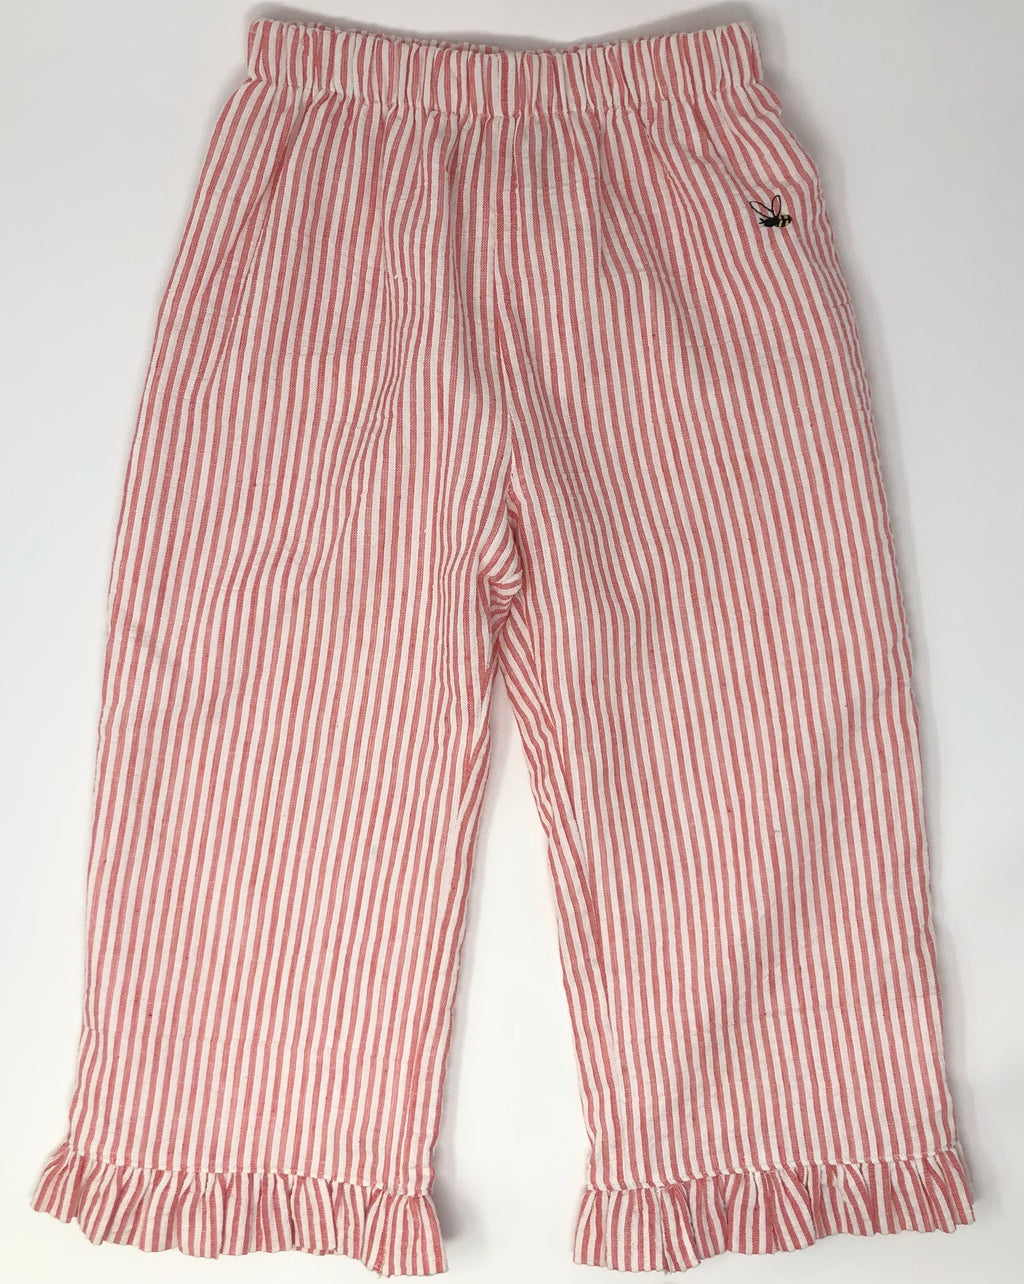 Seersucker Stripe Piper Pant